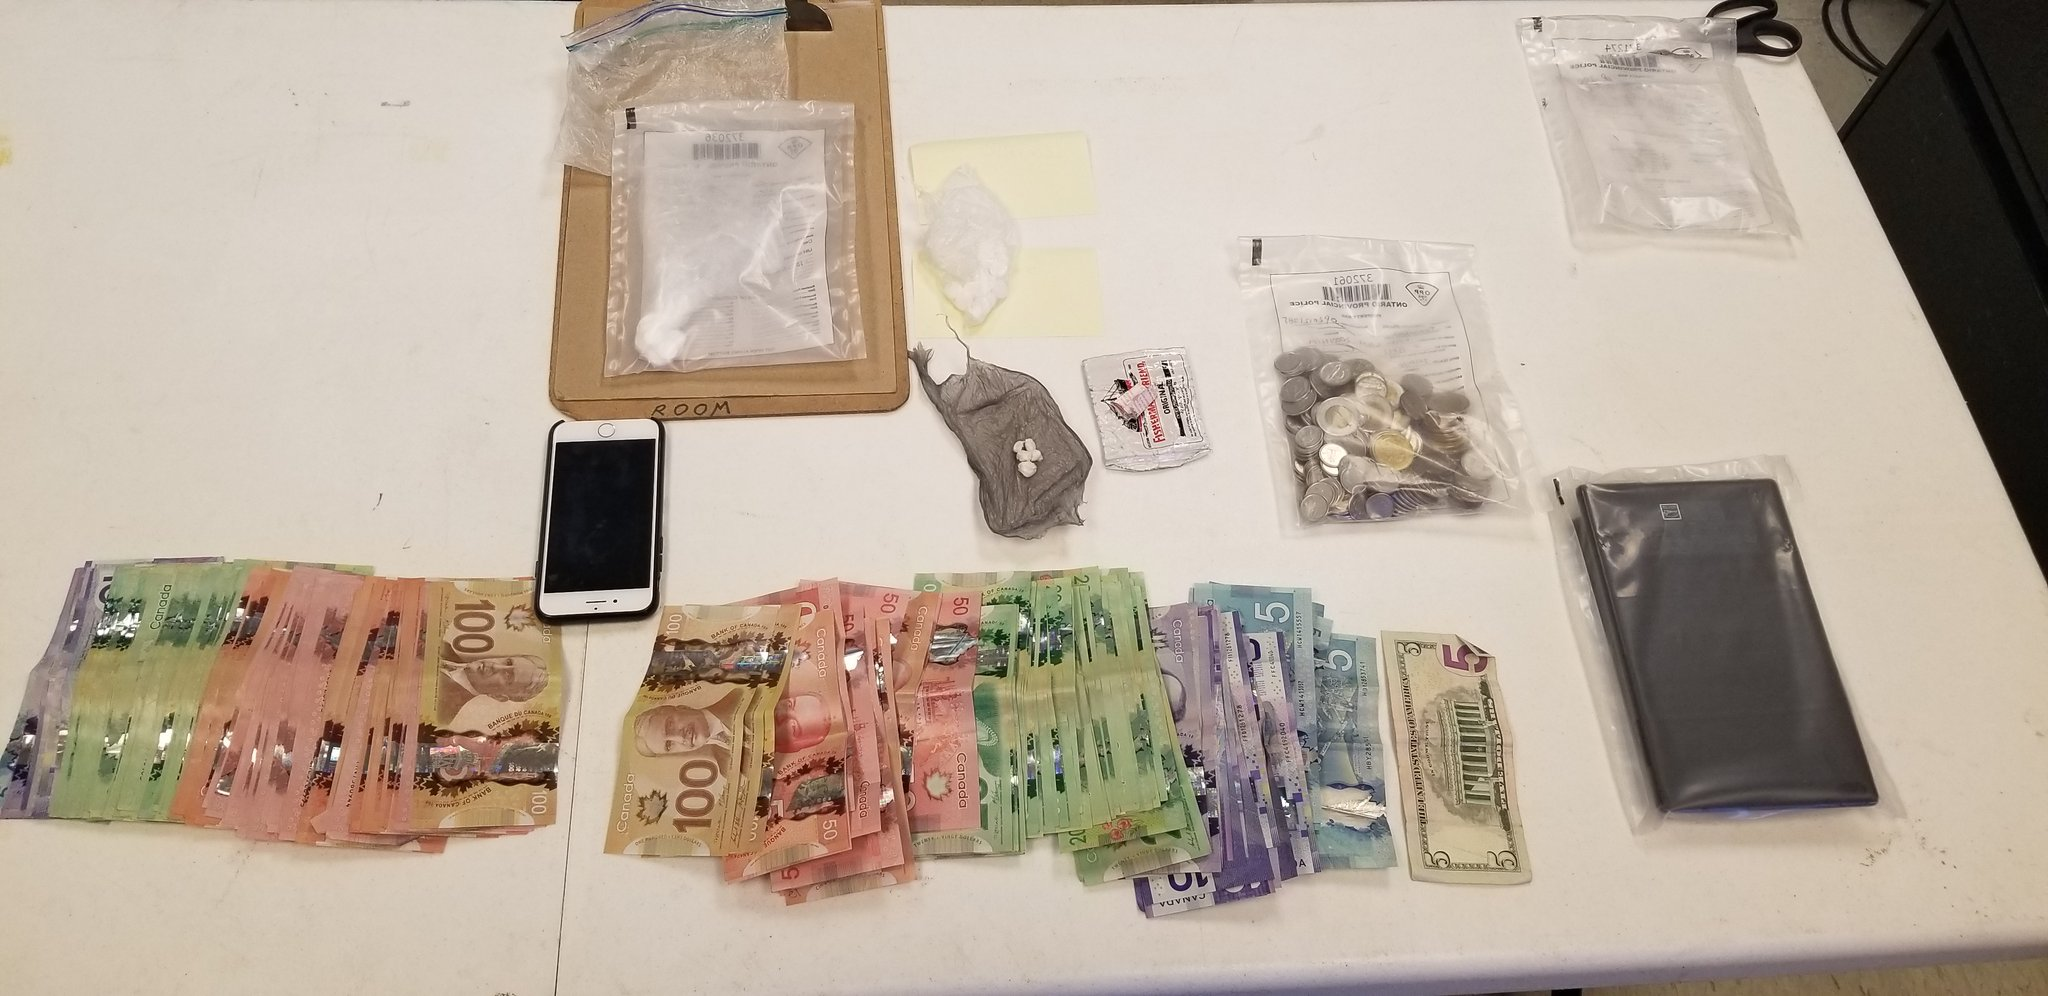 Two charged following investigation into drug trafficking in Orillia